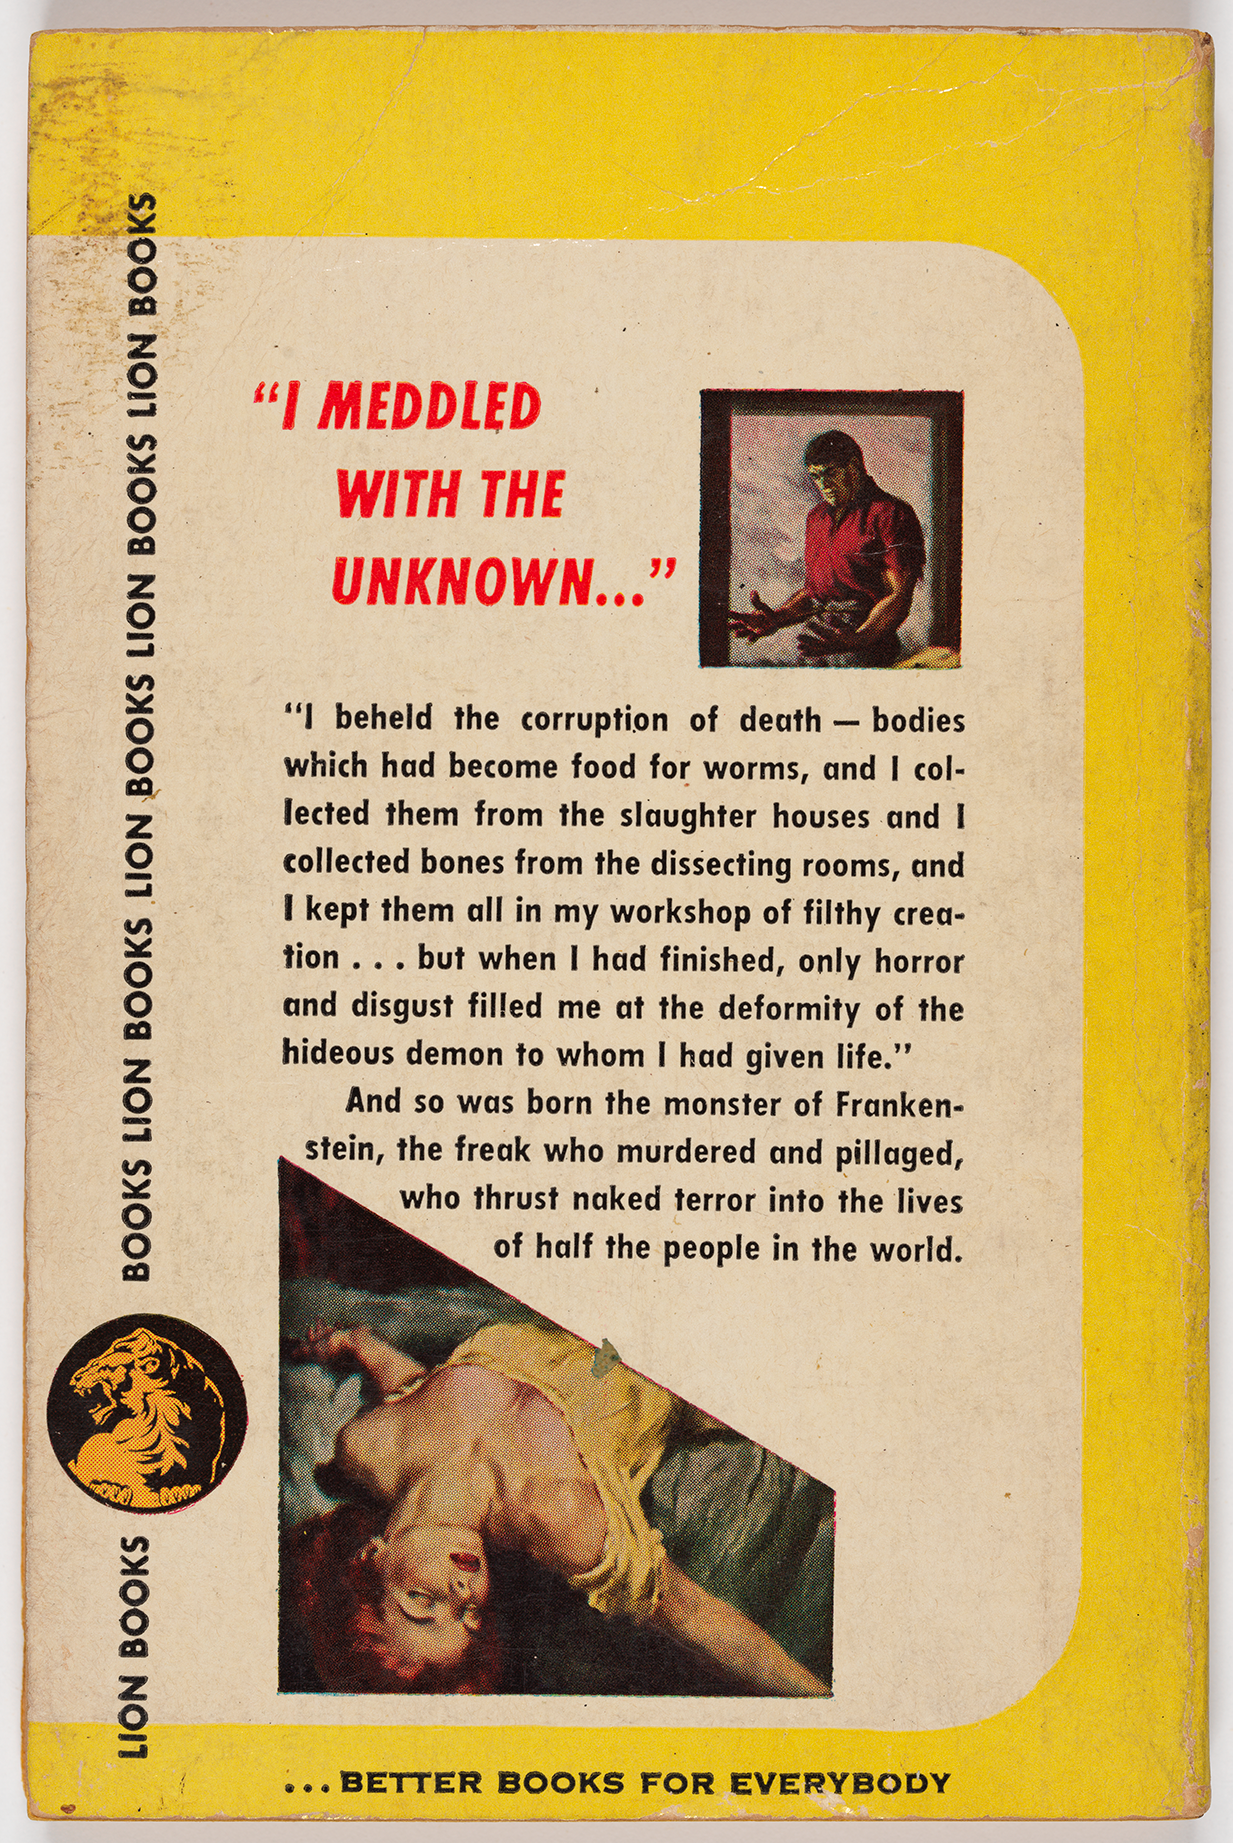 """I meddled with the unknown"" appears next to a smaller figure of the monster from the front cover, followed by the full quote from the novel. Next to a smaller version of the woman from the front cover, the text reads, ""And so was born the monster of Frankenstein, the freak who murdered and pillaged, who thrust naked terror into the lives of half the people in the world."" The Lion Books logo and tagline (""better books for everybody"") also appear."